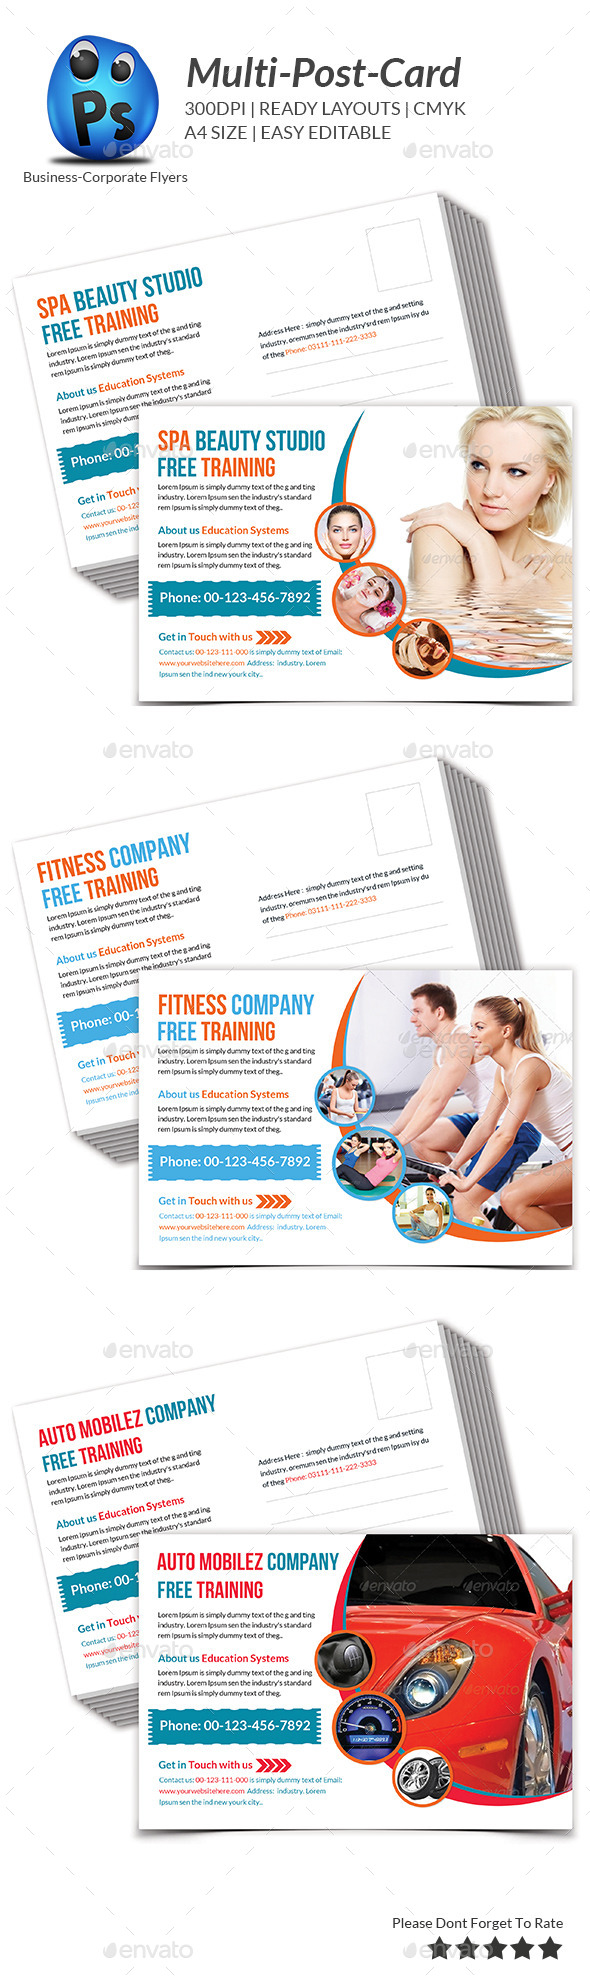 Multipurpose Business Postcard Template - Cards & Invites Print Templates